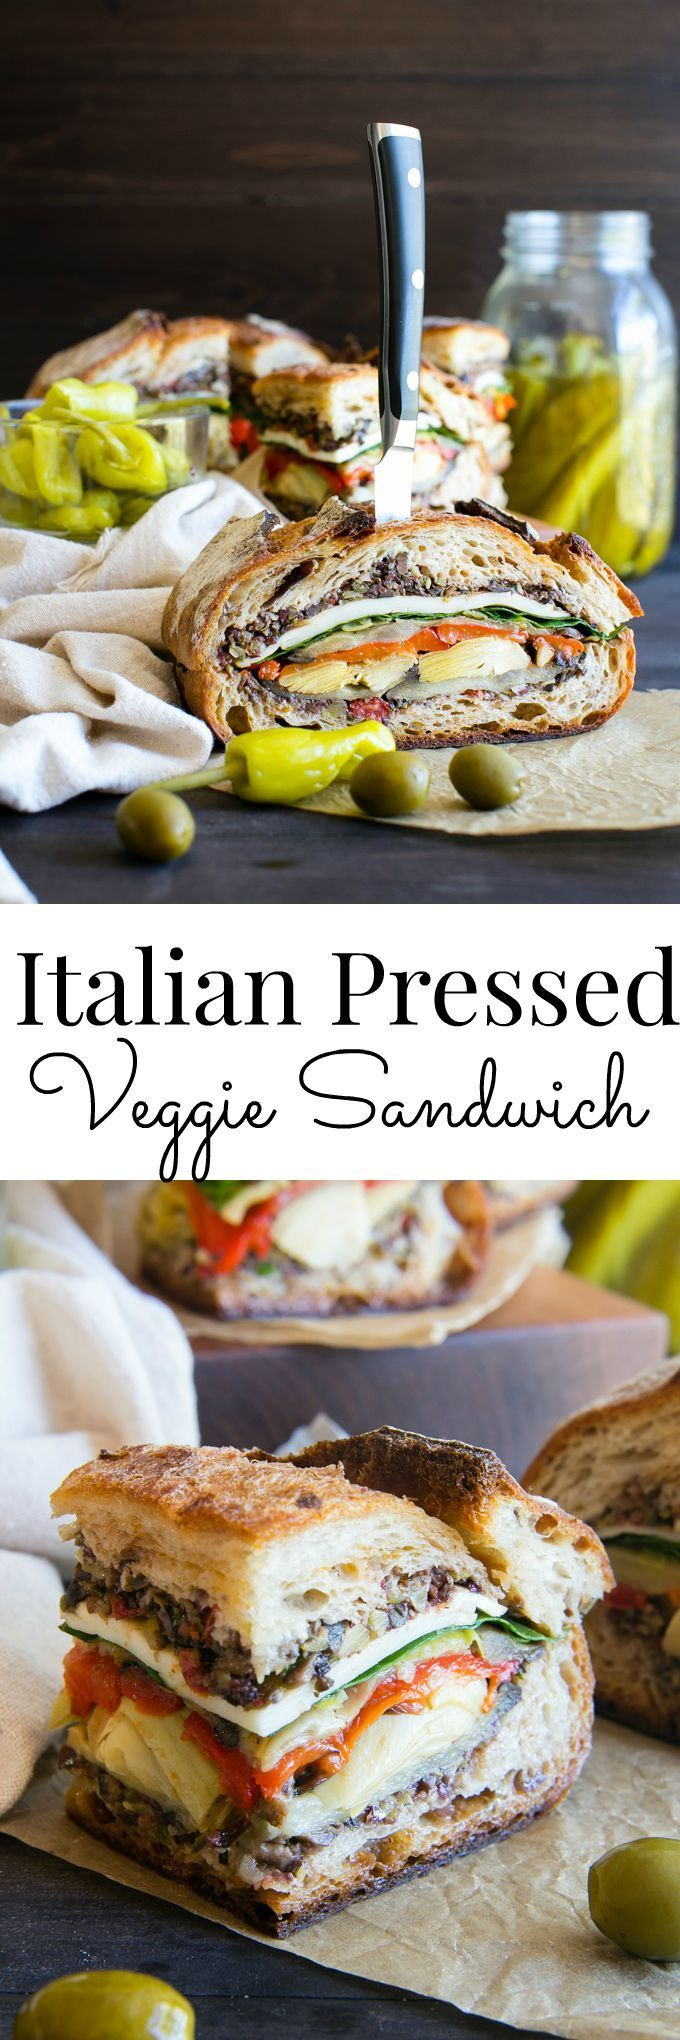 Vegetarian or Vegan, this sandwich is easy to make, feeds a small crowd and packs up for lunches, picnics or tailgating with ease | Italian Pressed Sandwich